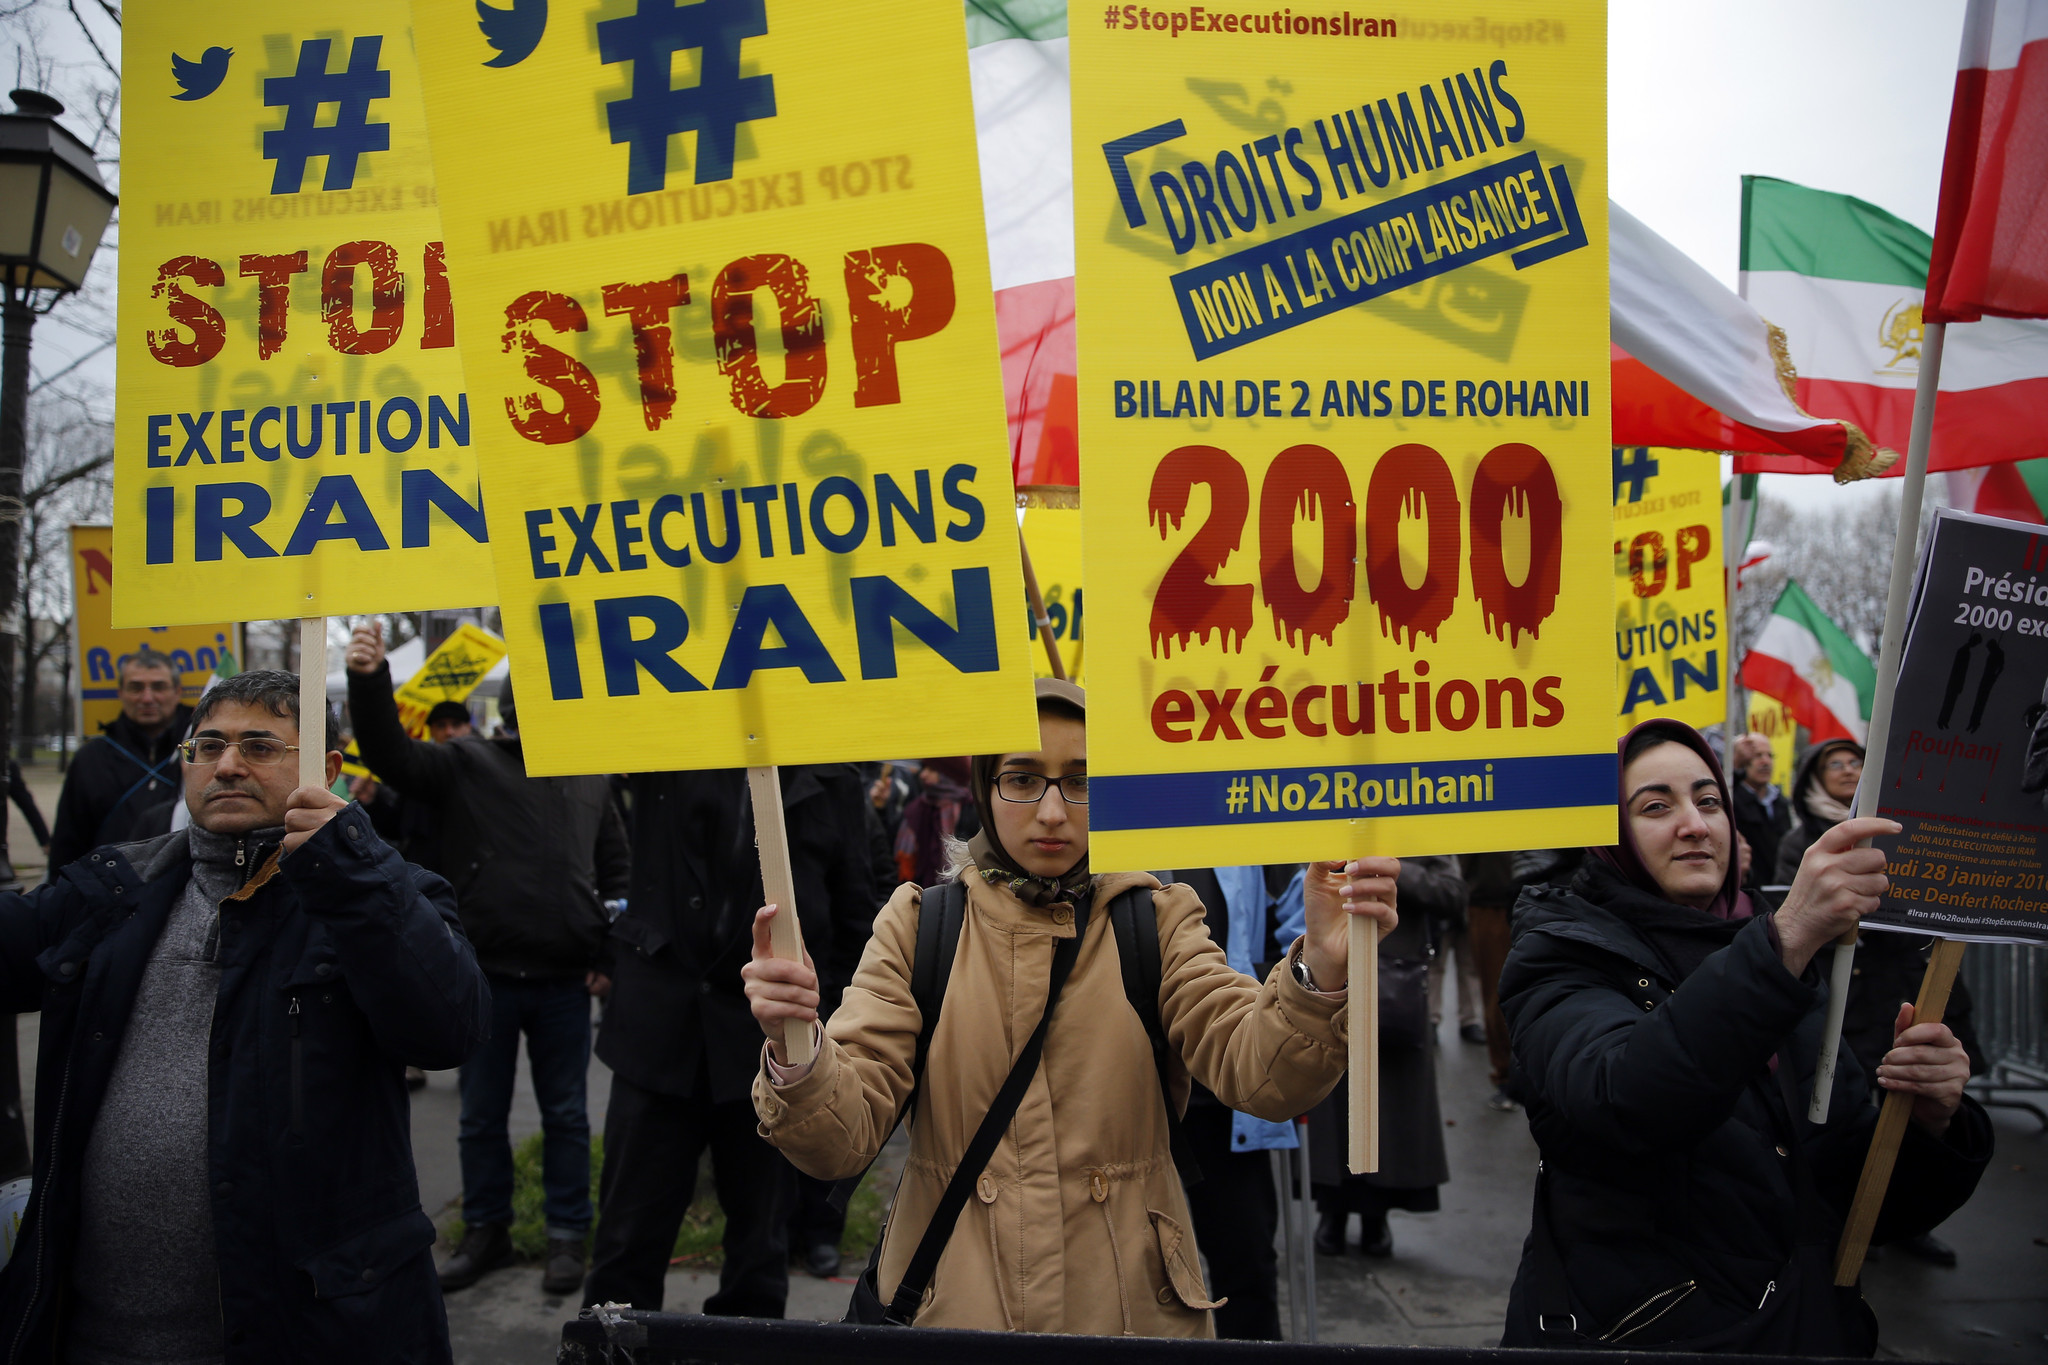 la-fg-global-iran-human-rights.jpg